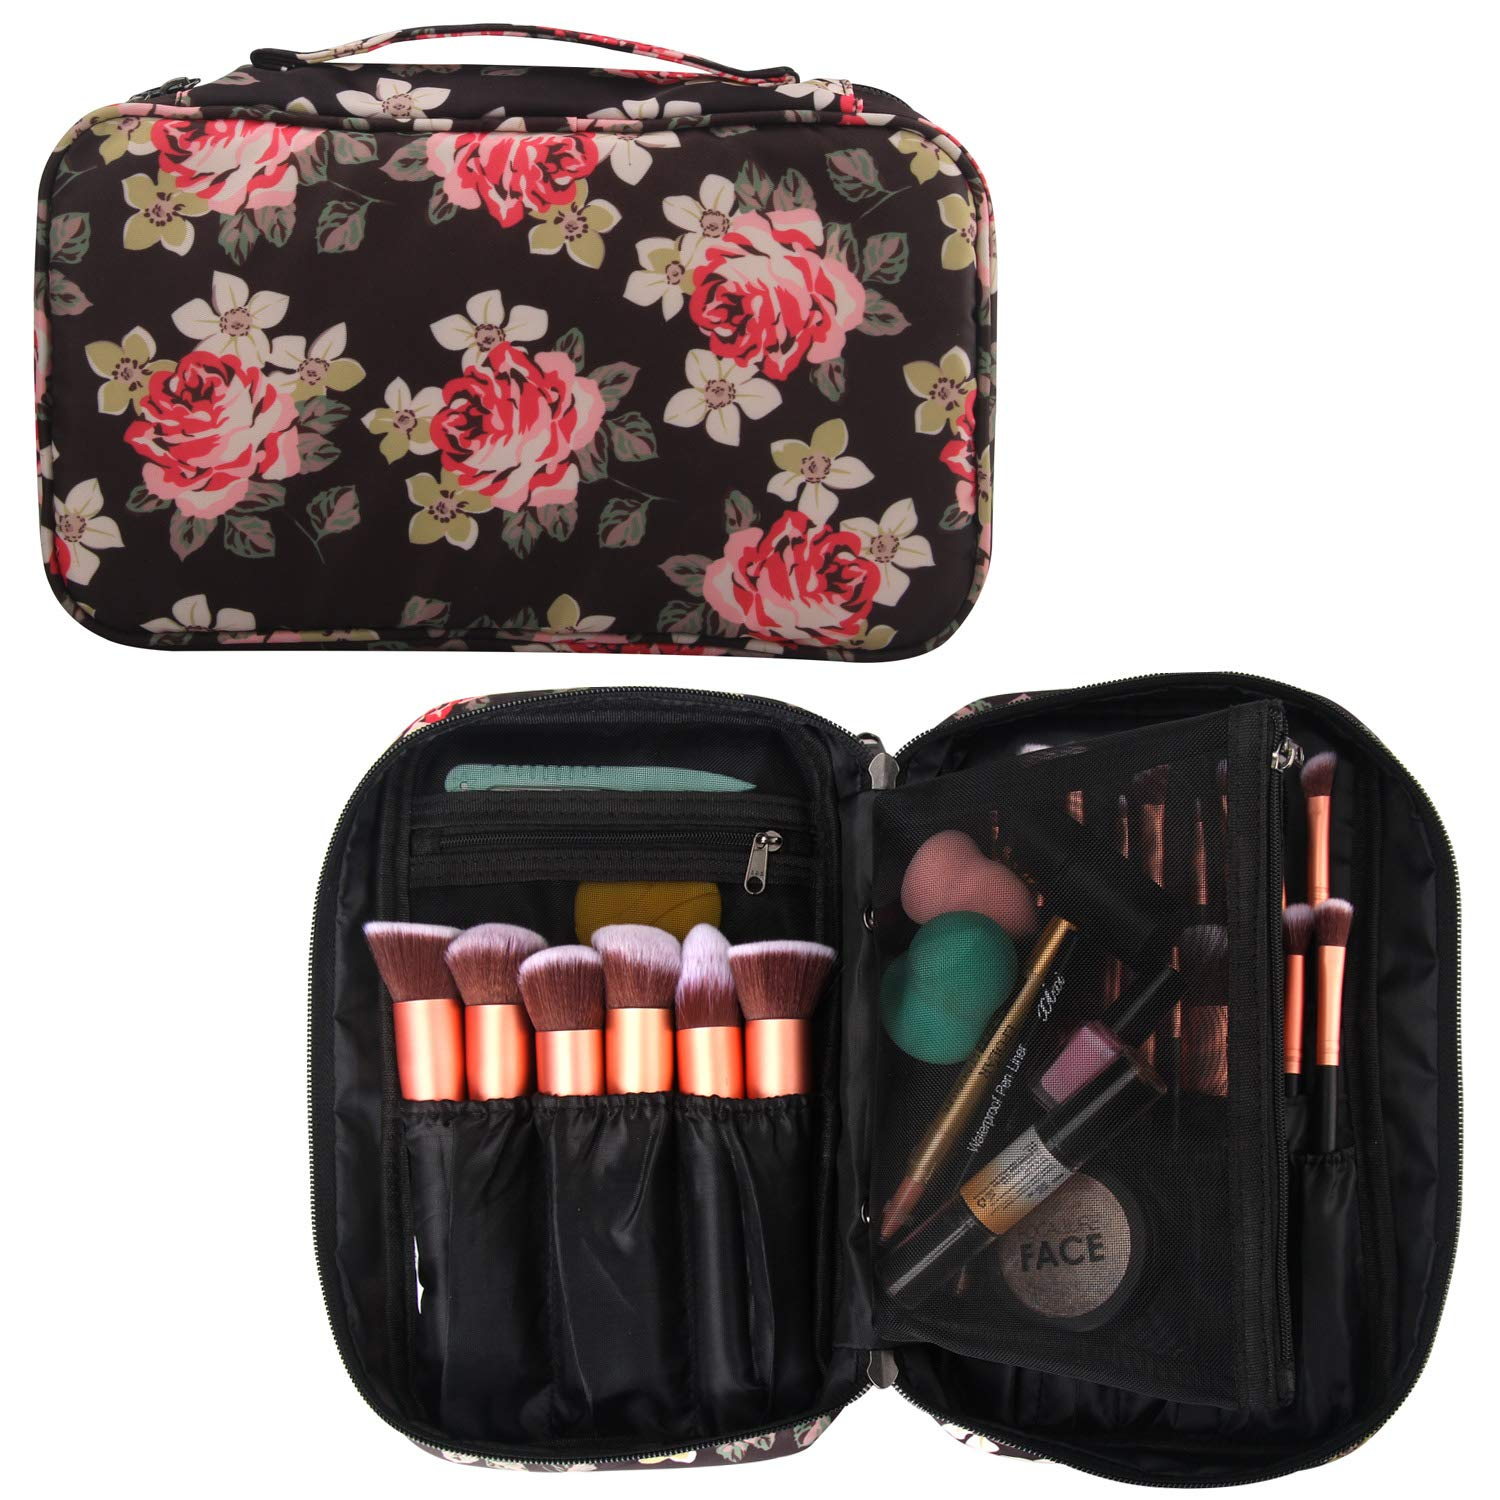 Professional Cosmetic Case Makeup Brush Organizer Makeup Artist Case with Belt Strap Holder Multi functional Cosmetic Bag Makeup Handbag for Travel & Home Gift (Peony Pattern)